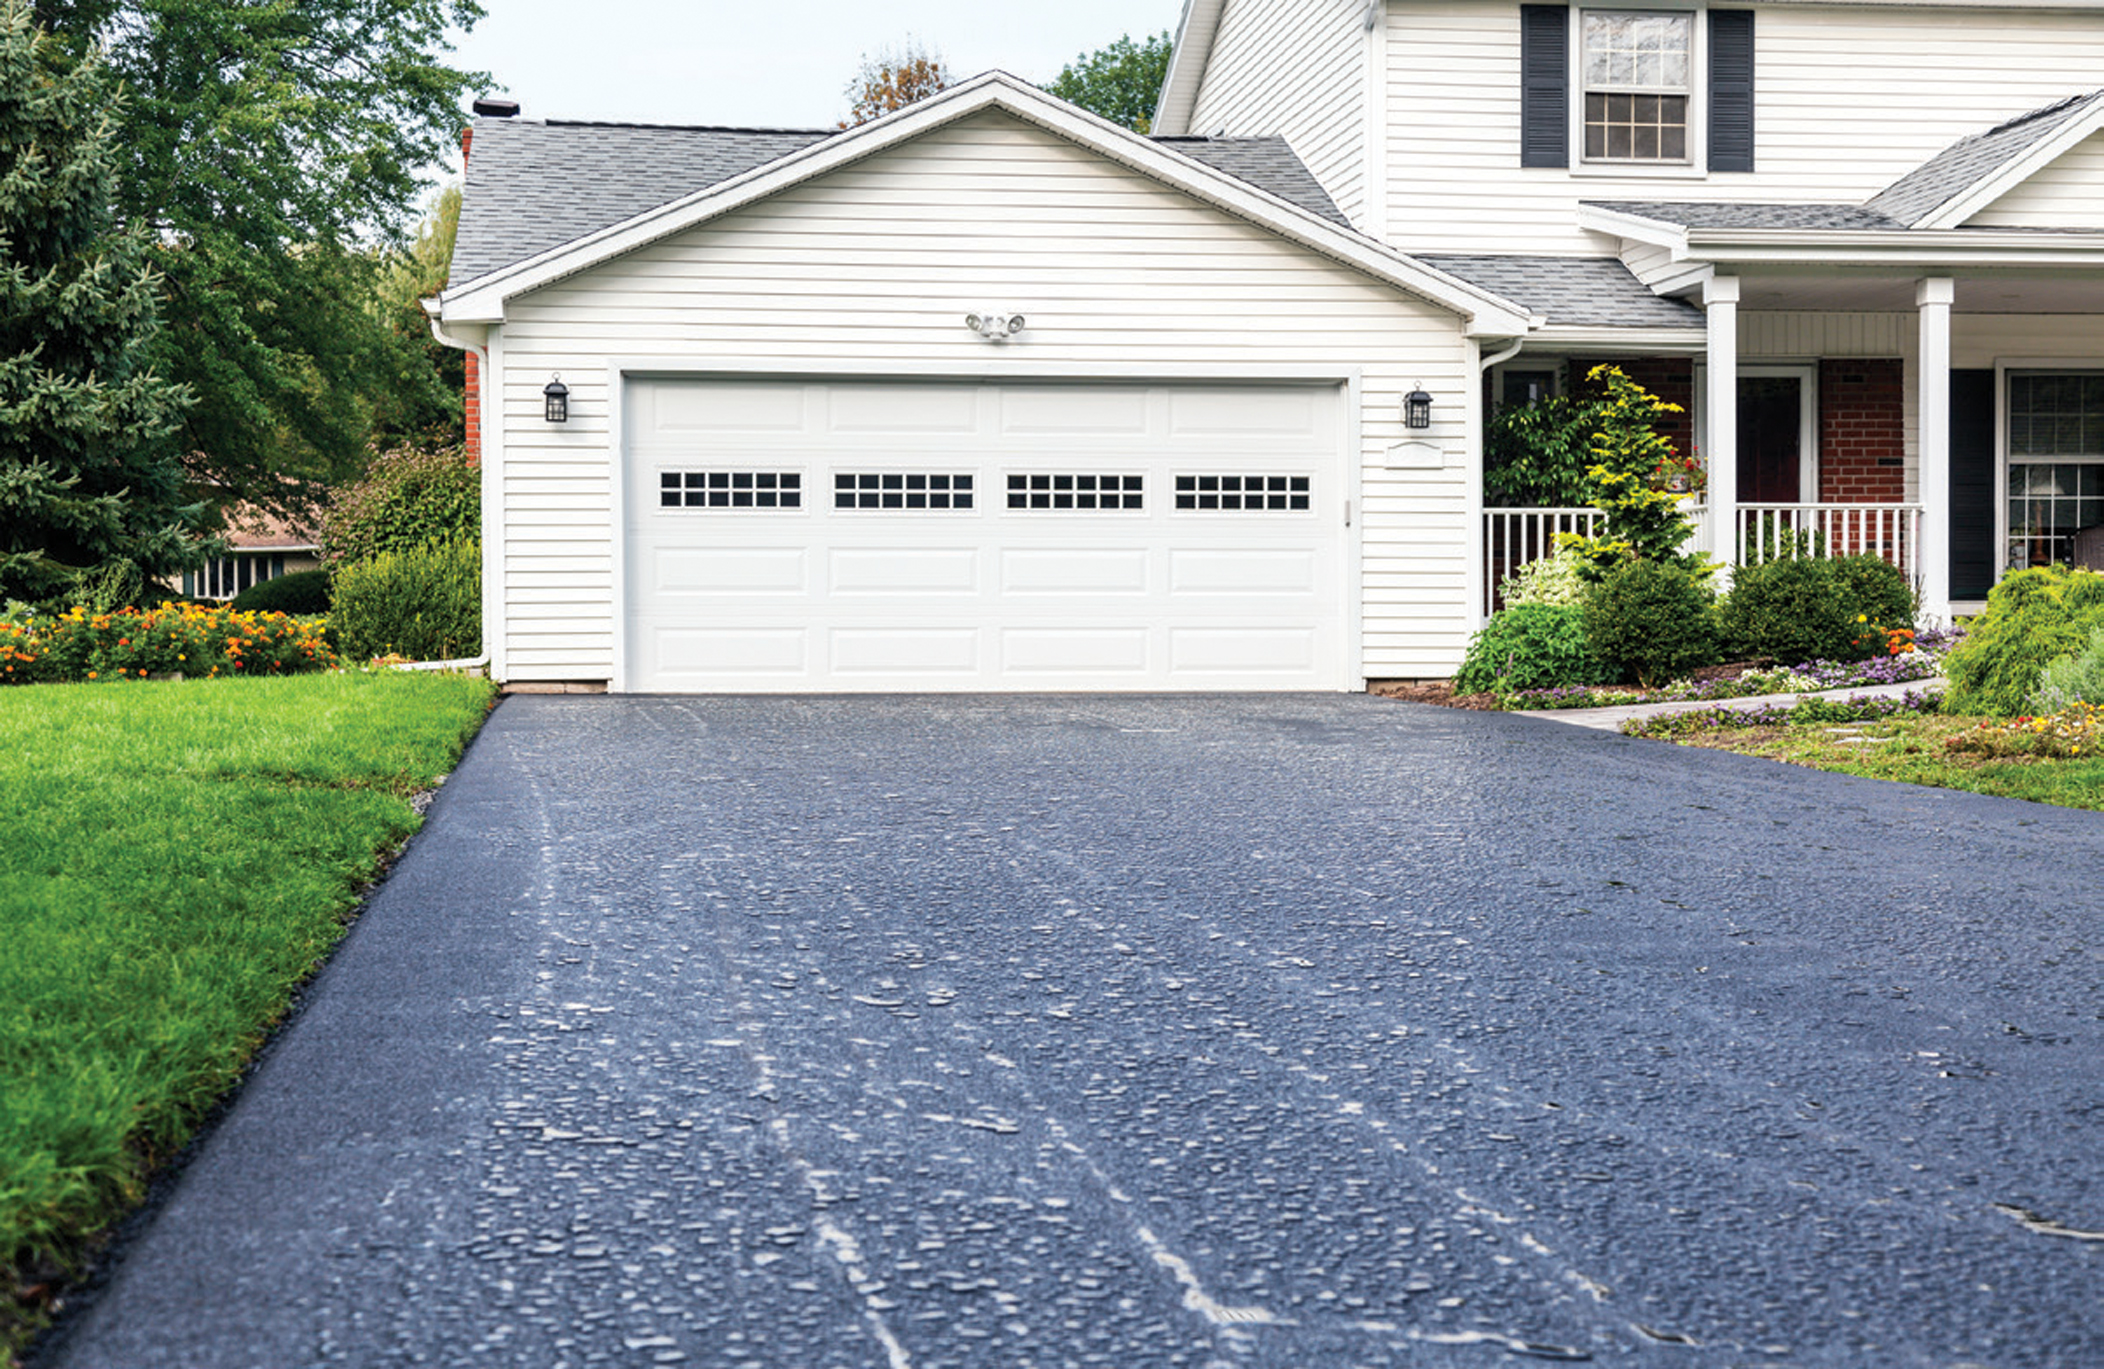 New Asphalt Driveway Rain Puddles at Residential Home